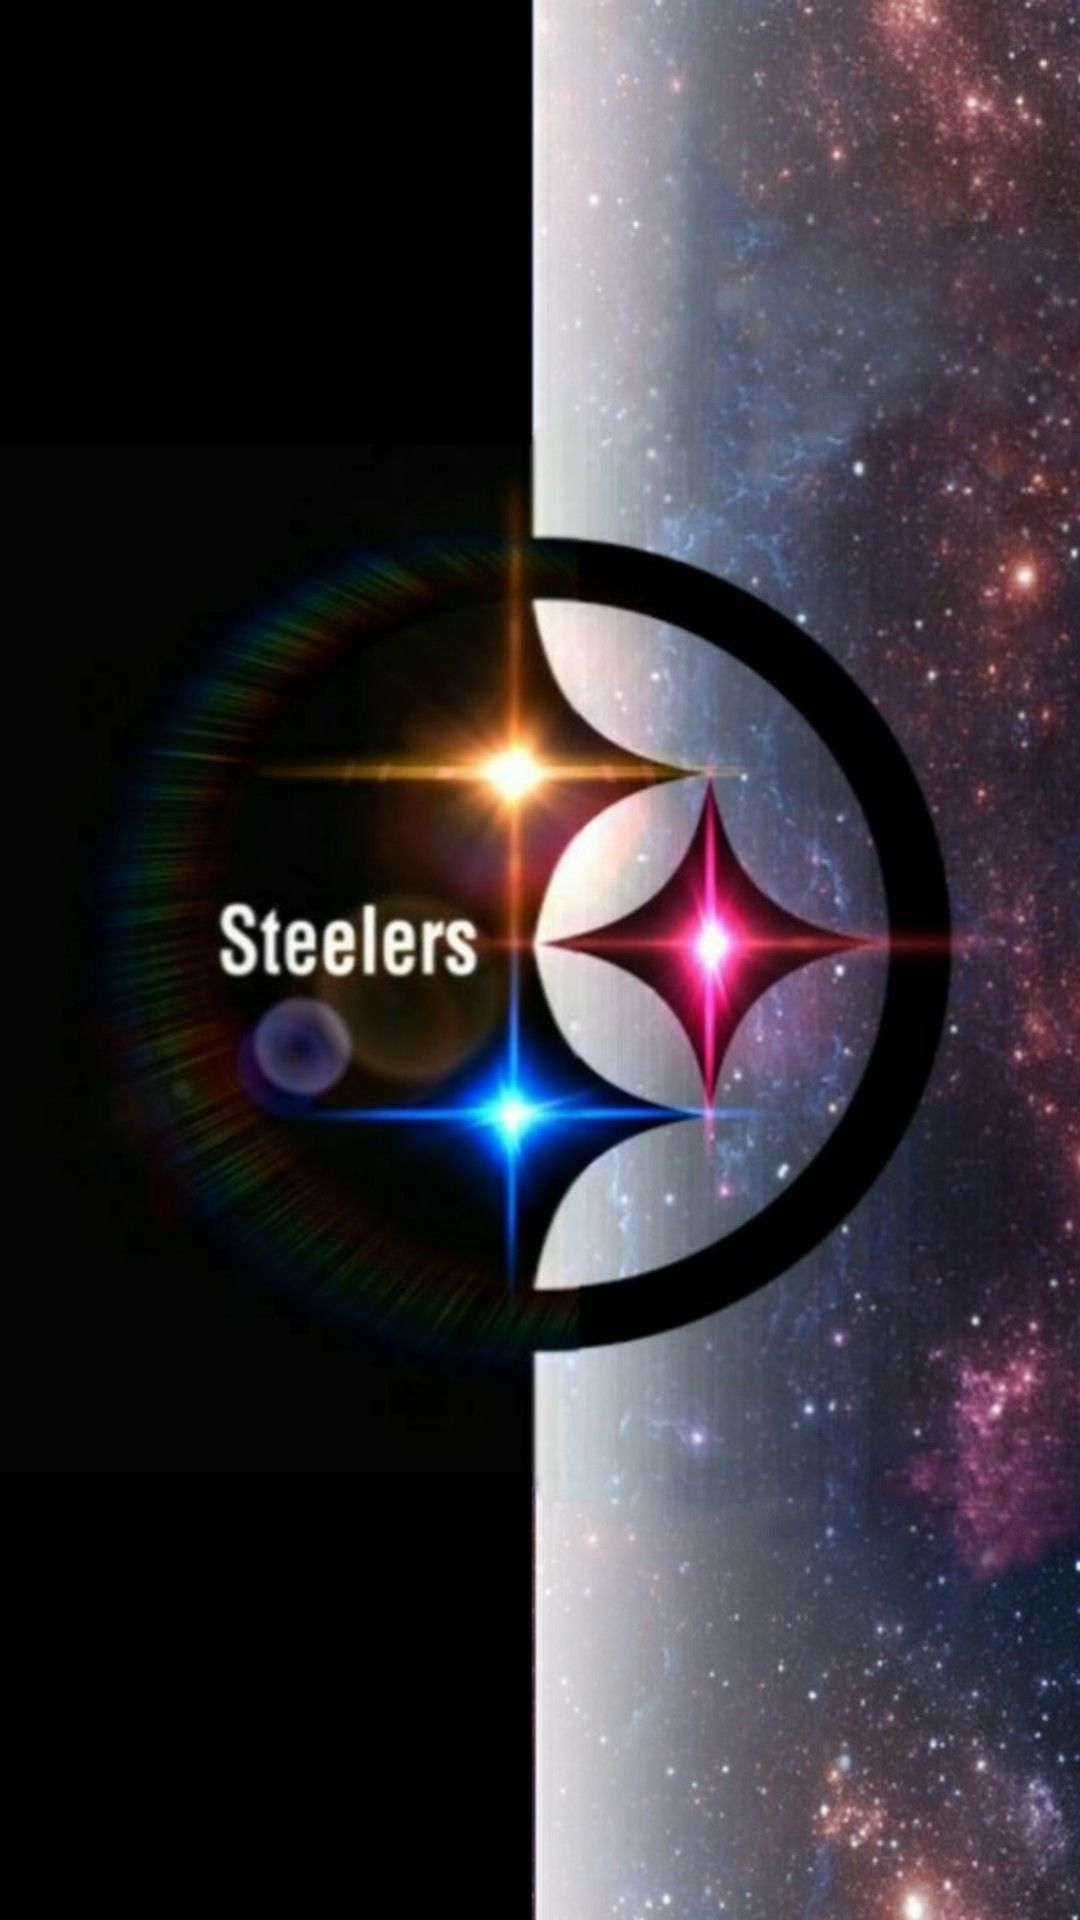 Steelers Wallpaper Android In 2020 Pittsburgh Steelers Wallpaper Pittsburgh Steelers Logo Pittsburg Steelers